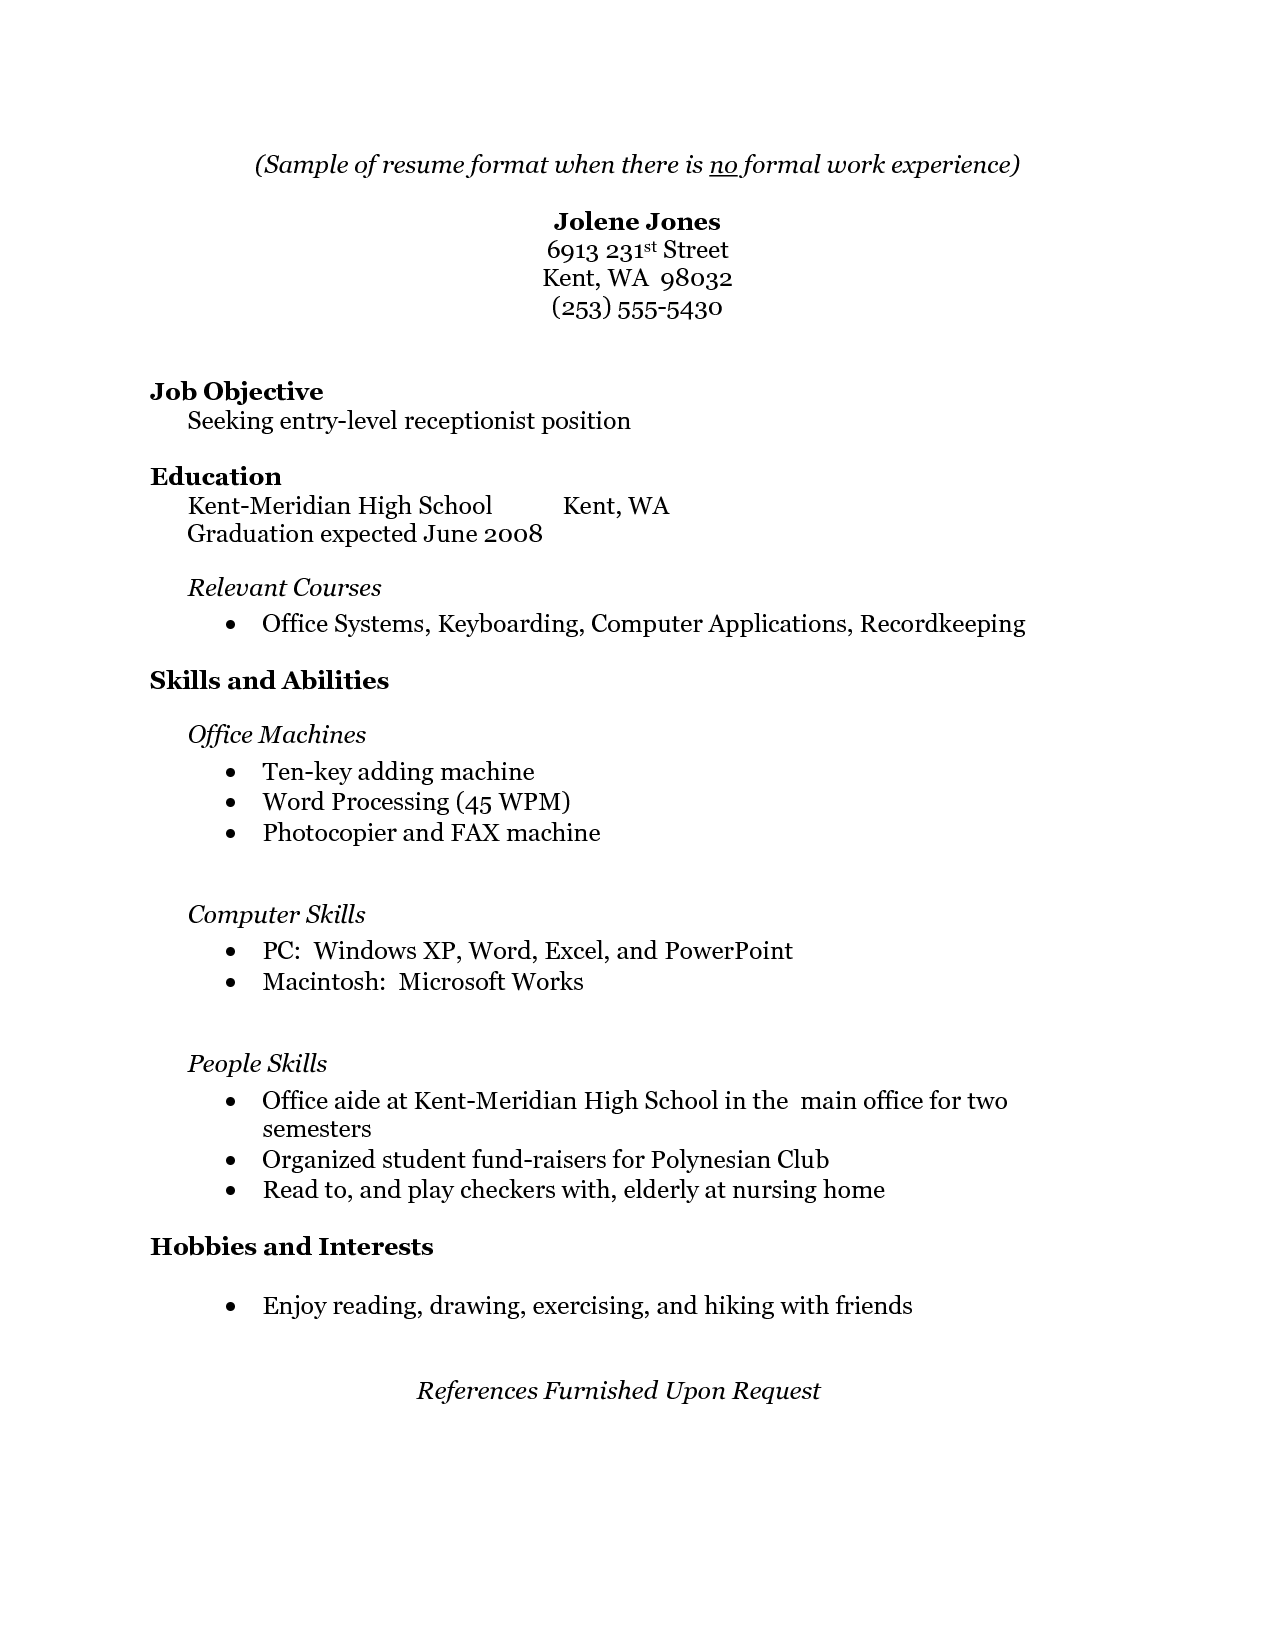 Resume Examples With No Job Experience 1